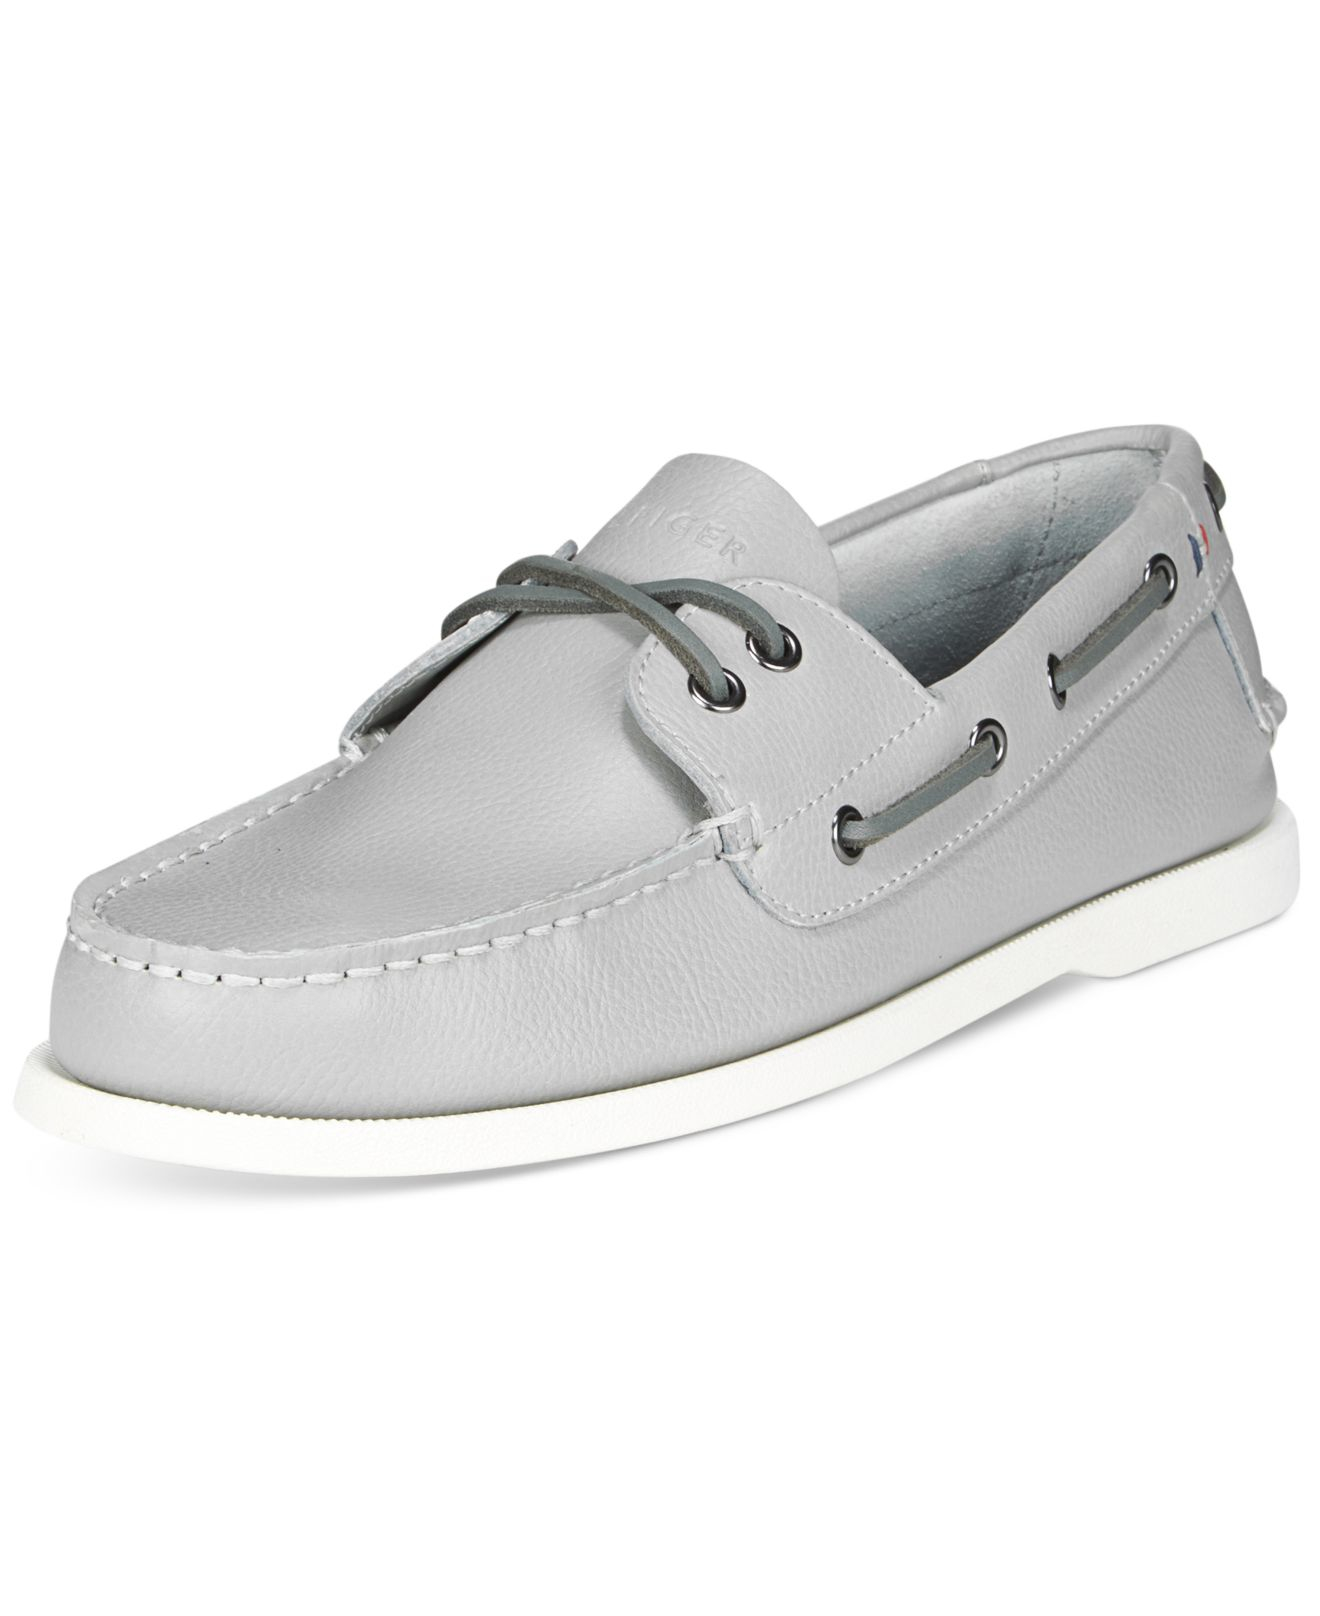 Lyst - Tommy Hilfiger Men s Bowman Boat Shoes in Gray for Men 583cfac3353b